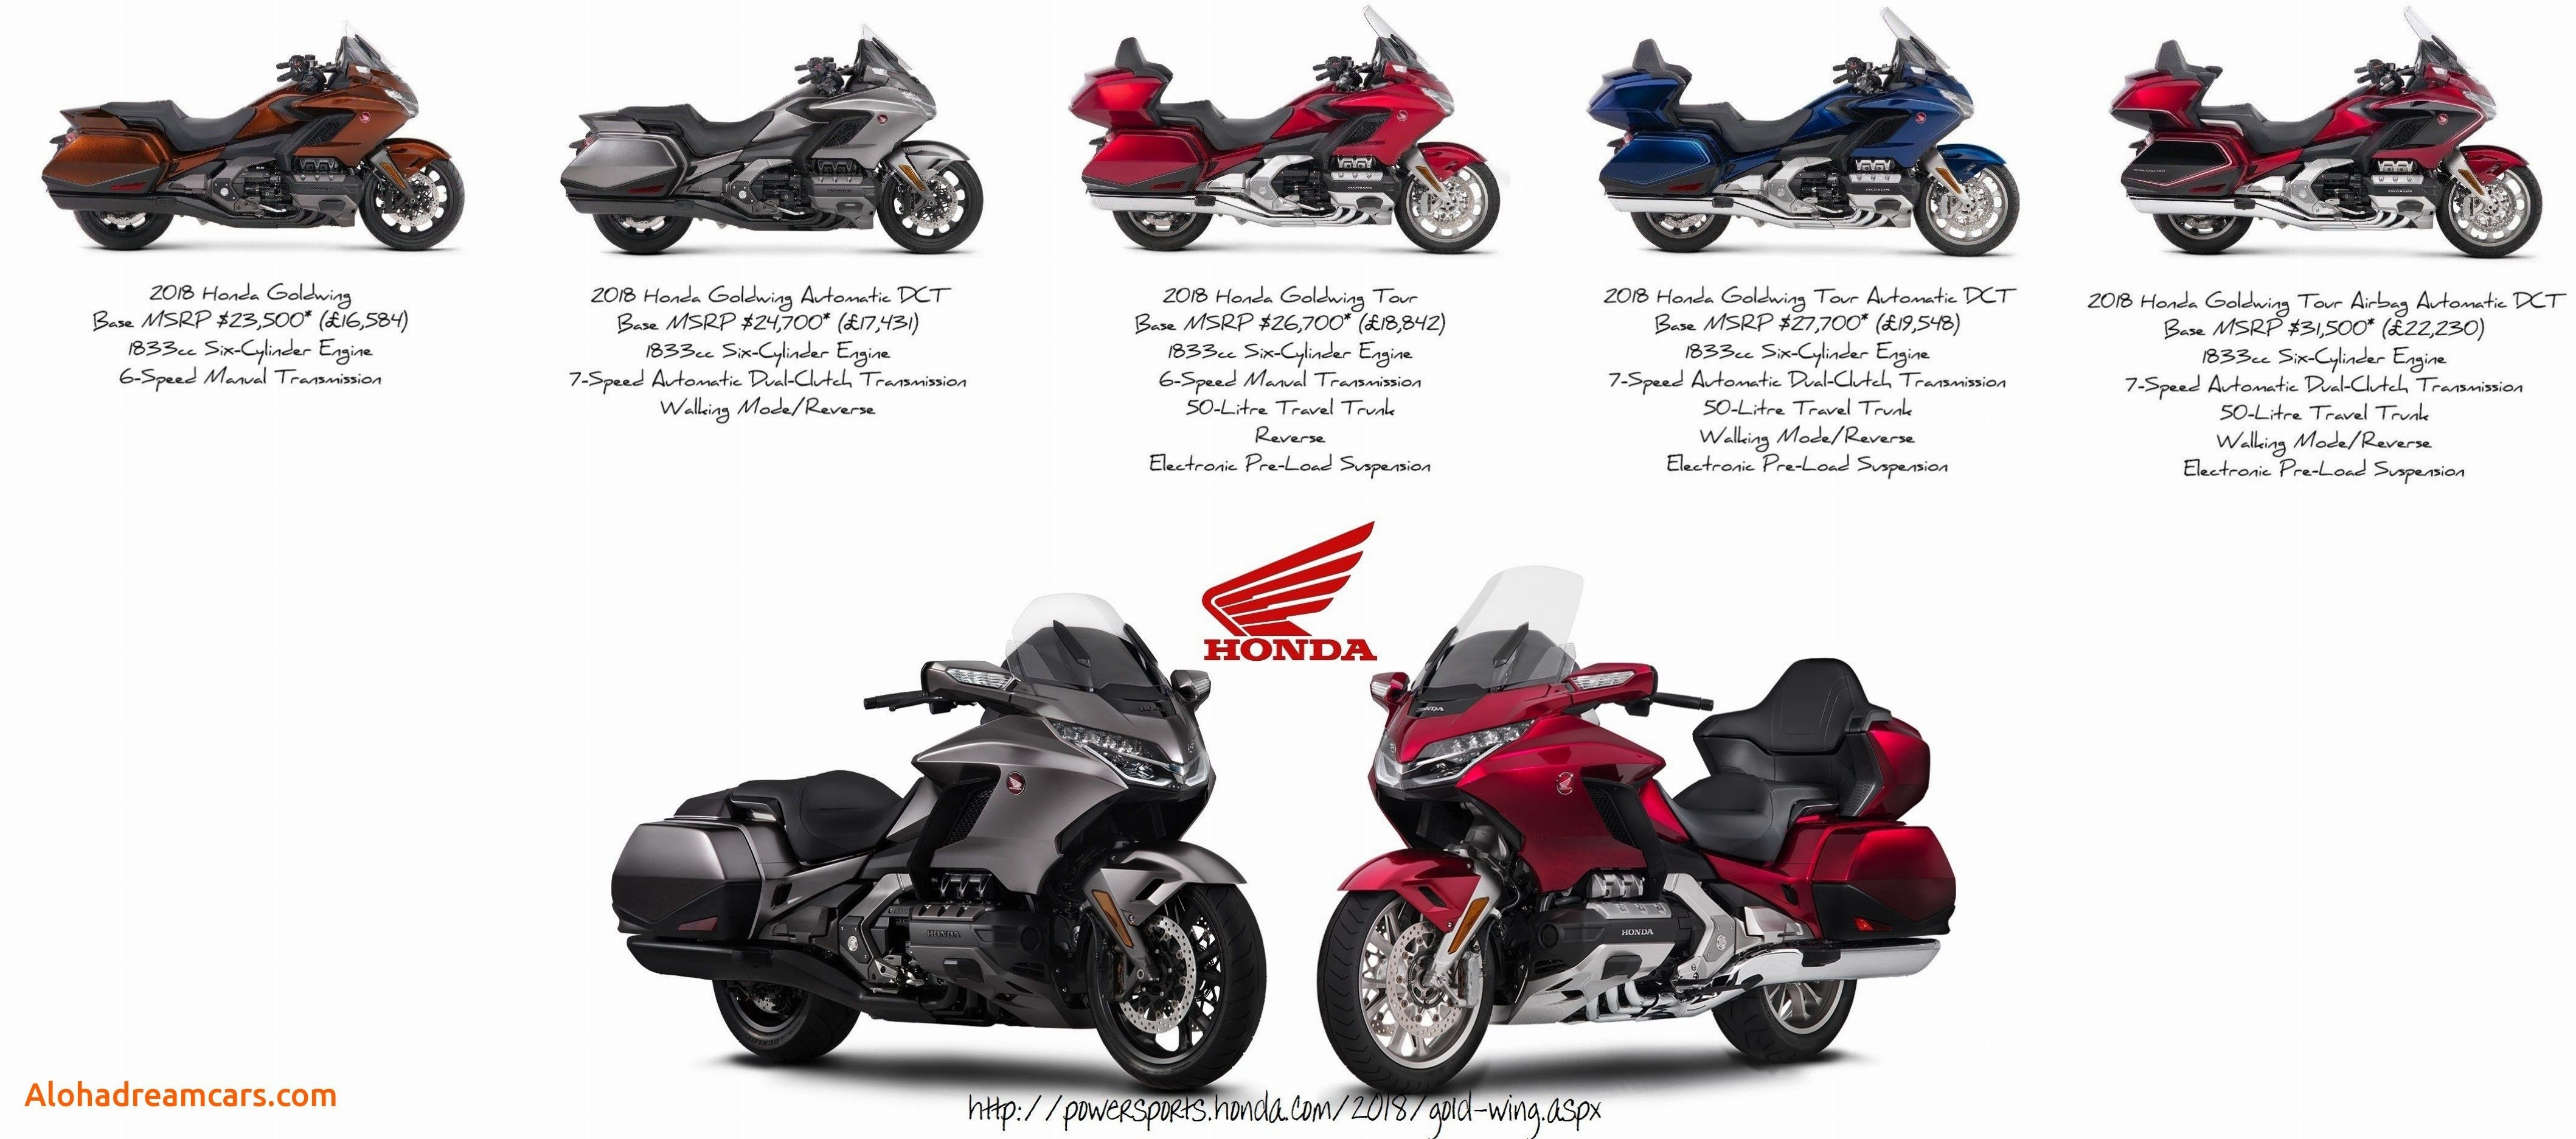 46 All New 2020 Honda Gold Wing Wallpaper